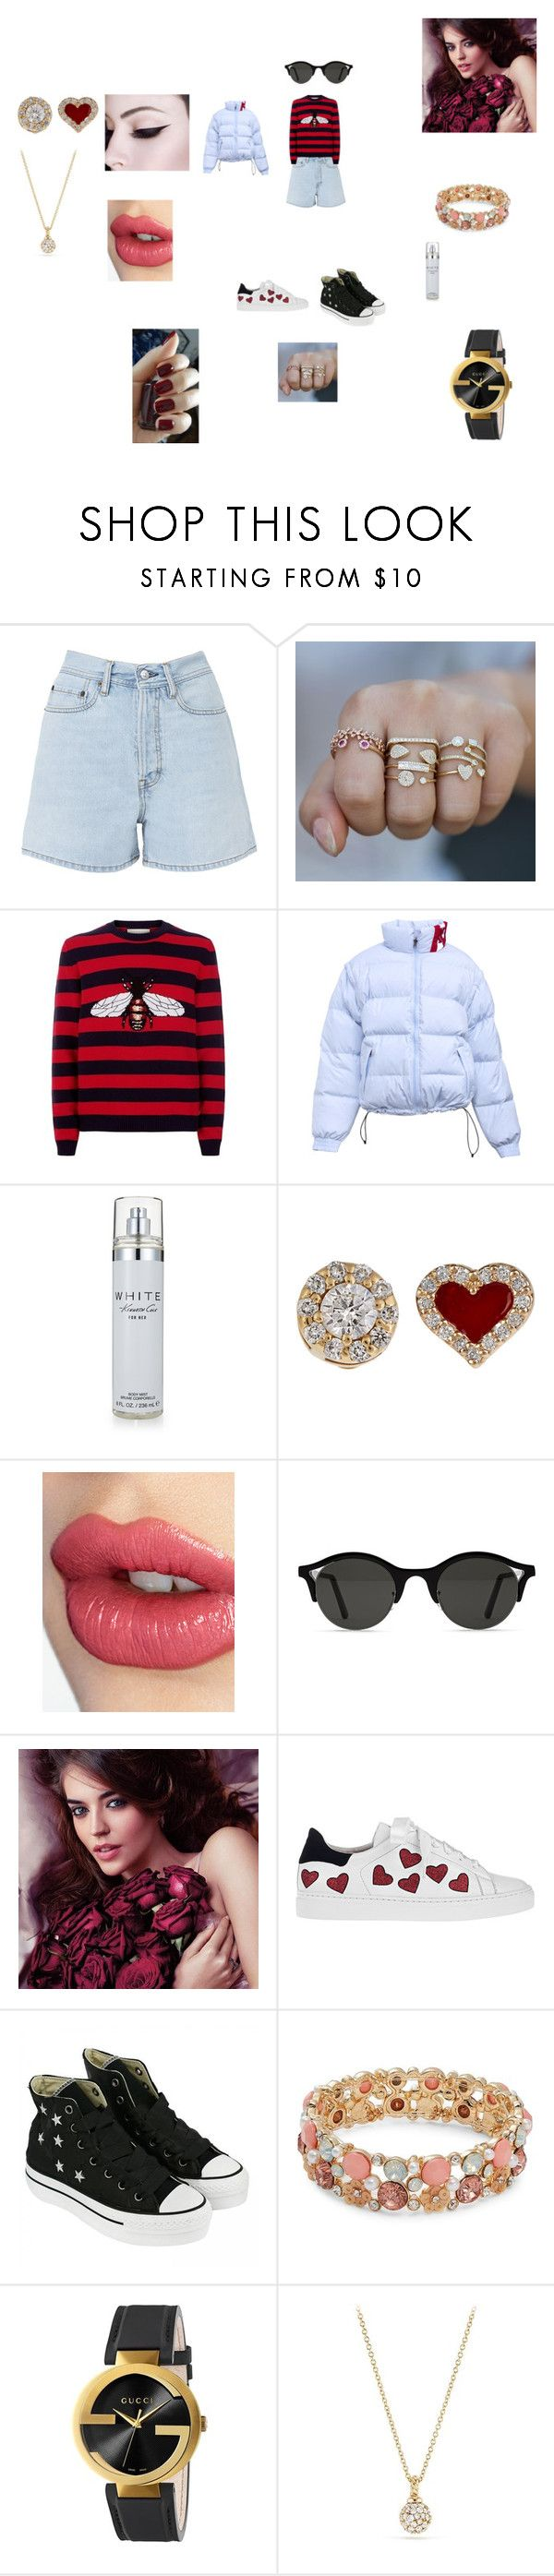 """""""Hot Winter"""" by annali1983 ❤ liked on Polyvore featuring Acne Studios, Gucci, Kenneth Cole, Alison Lou, Charlotte Tilbury, Avon, Steffen Schraut, Converse, Design Lab and David Yurman"""